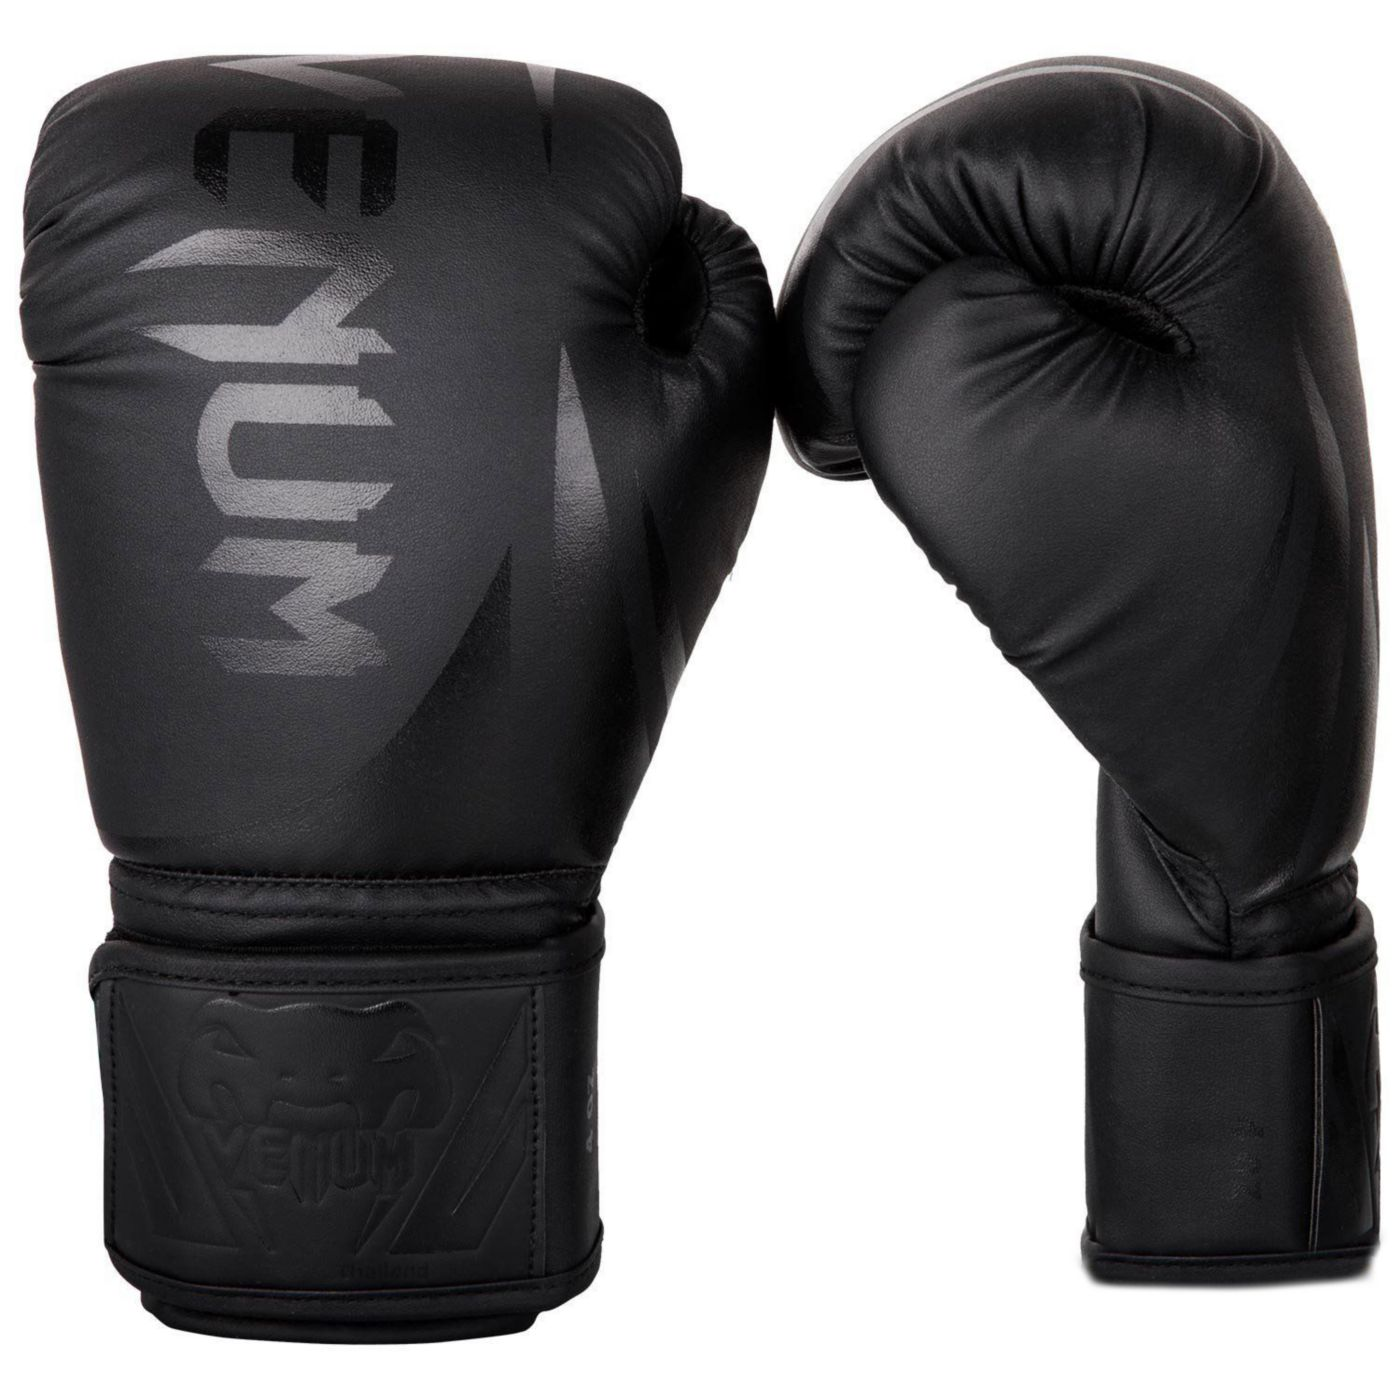 Venum Challenger 2.0 Youth Boxing Gloves